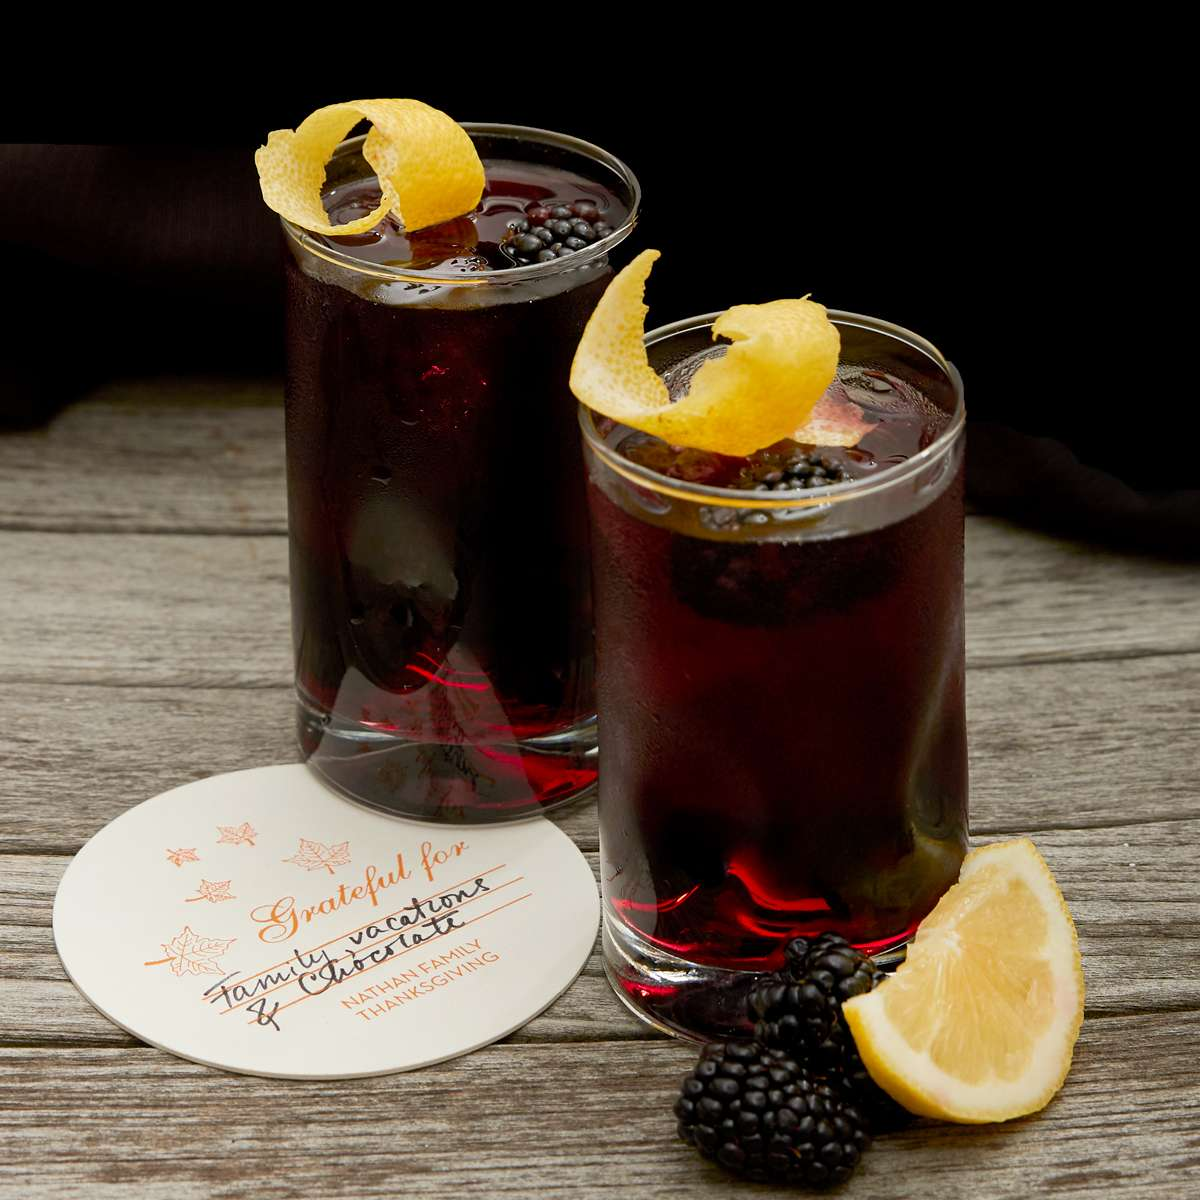 Blackberry cocktail recipe